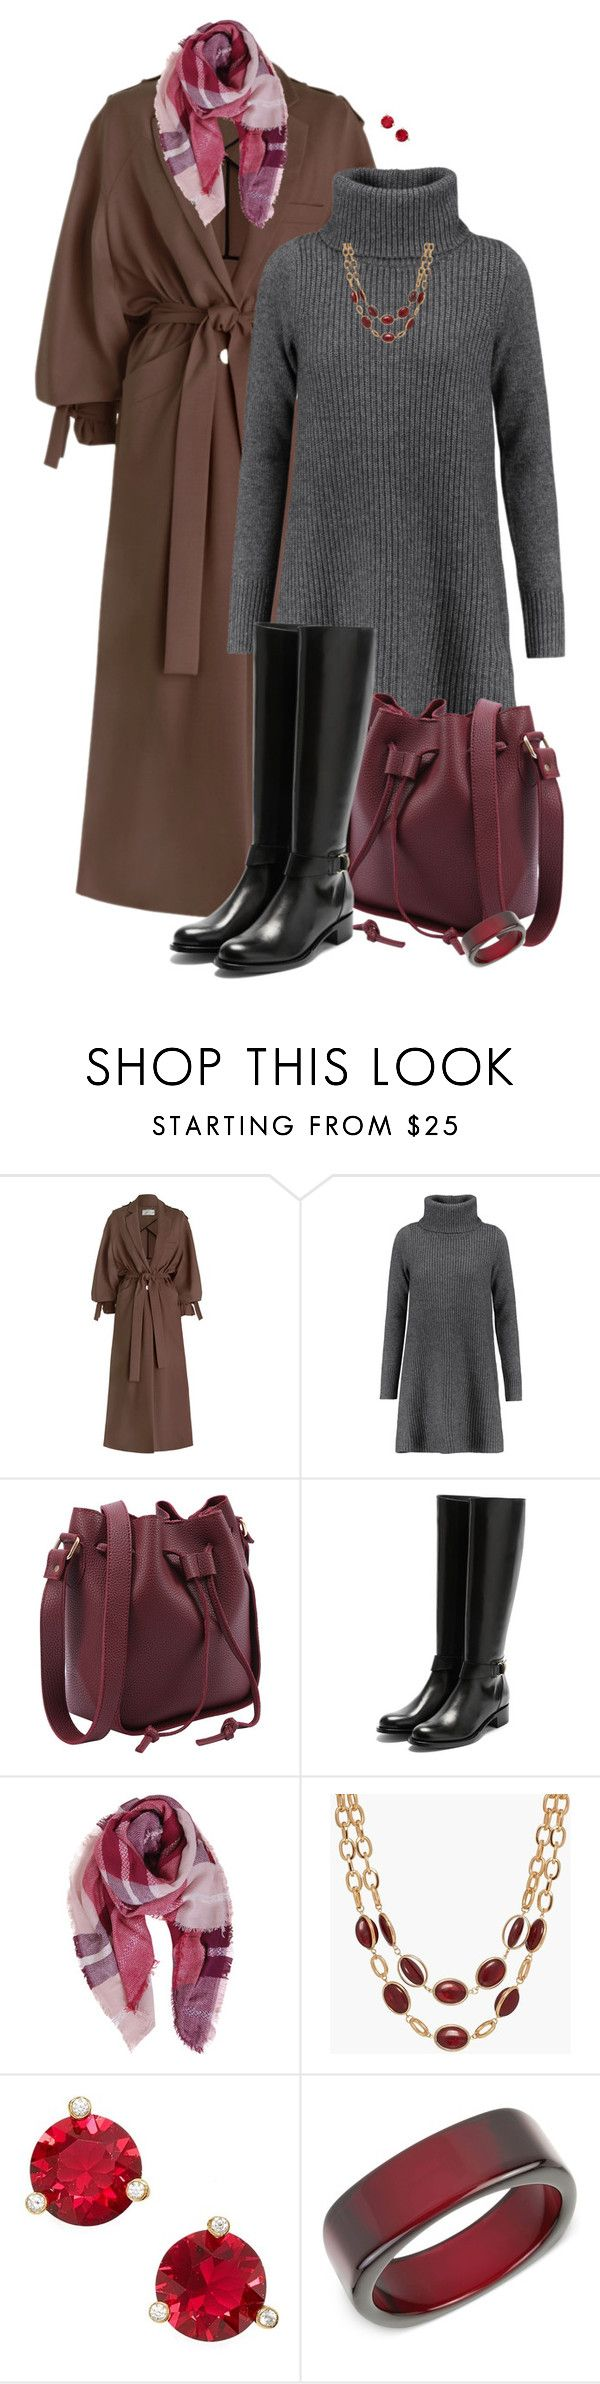 """""""Trench Coat for Fall/Winter"""" by sherry7411 on Polyvore featuring Zimmermann, Madeleine Thompson, Rupert Sanderson, Humble Chic, Talbots, Kate Spade and INC International Concepts"""